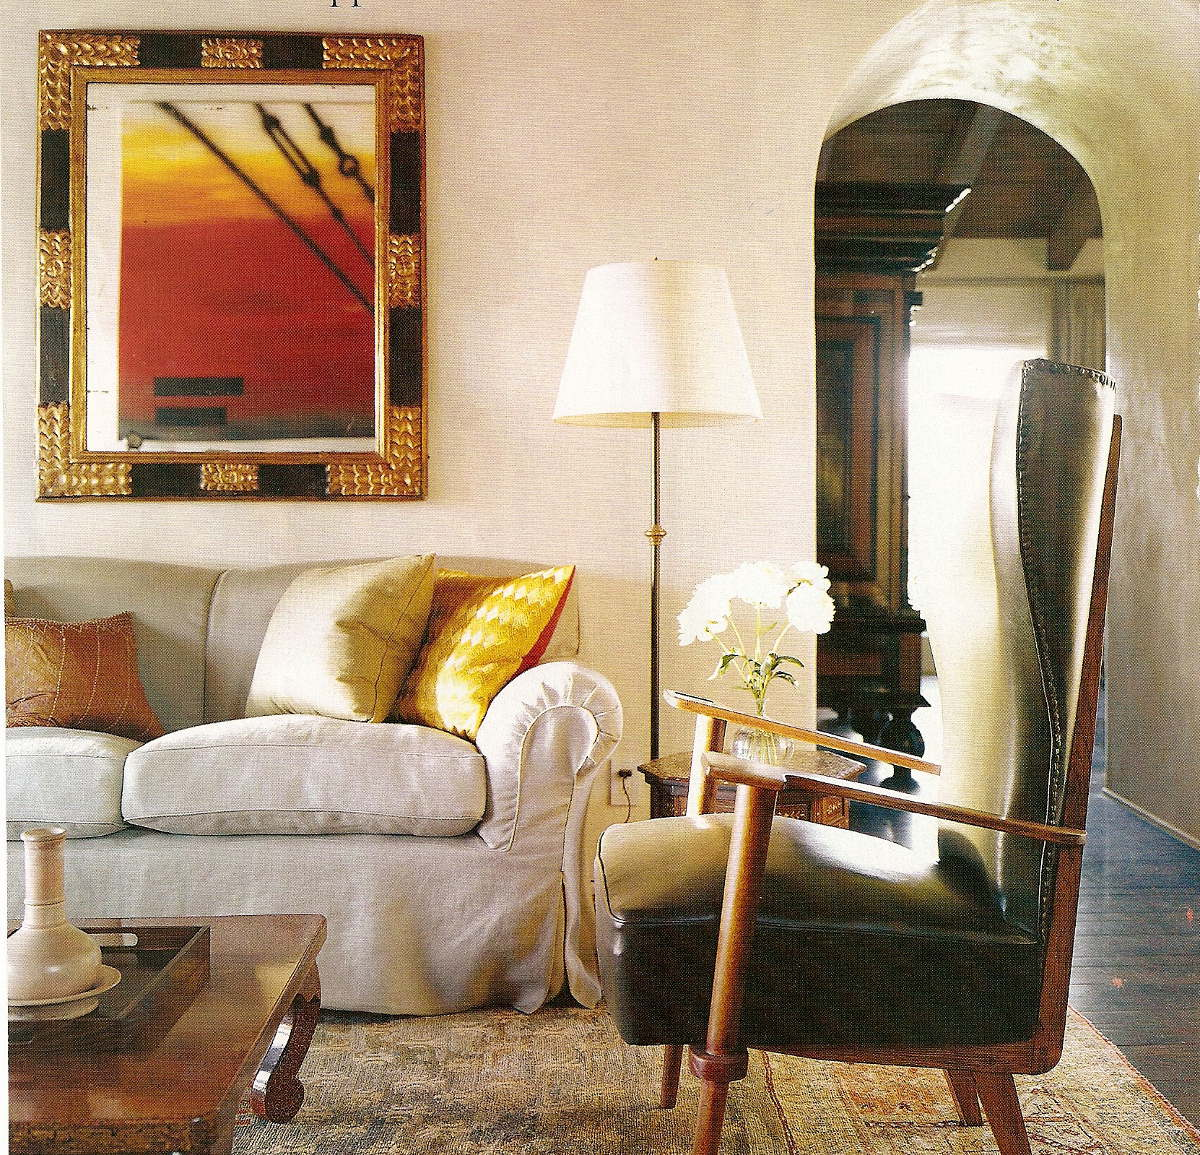 hollywood style - seating are in the breakfast room with a linen-slipcovered sofa in an LA house decorated by Michael S. Smith - H&G via Atticmag